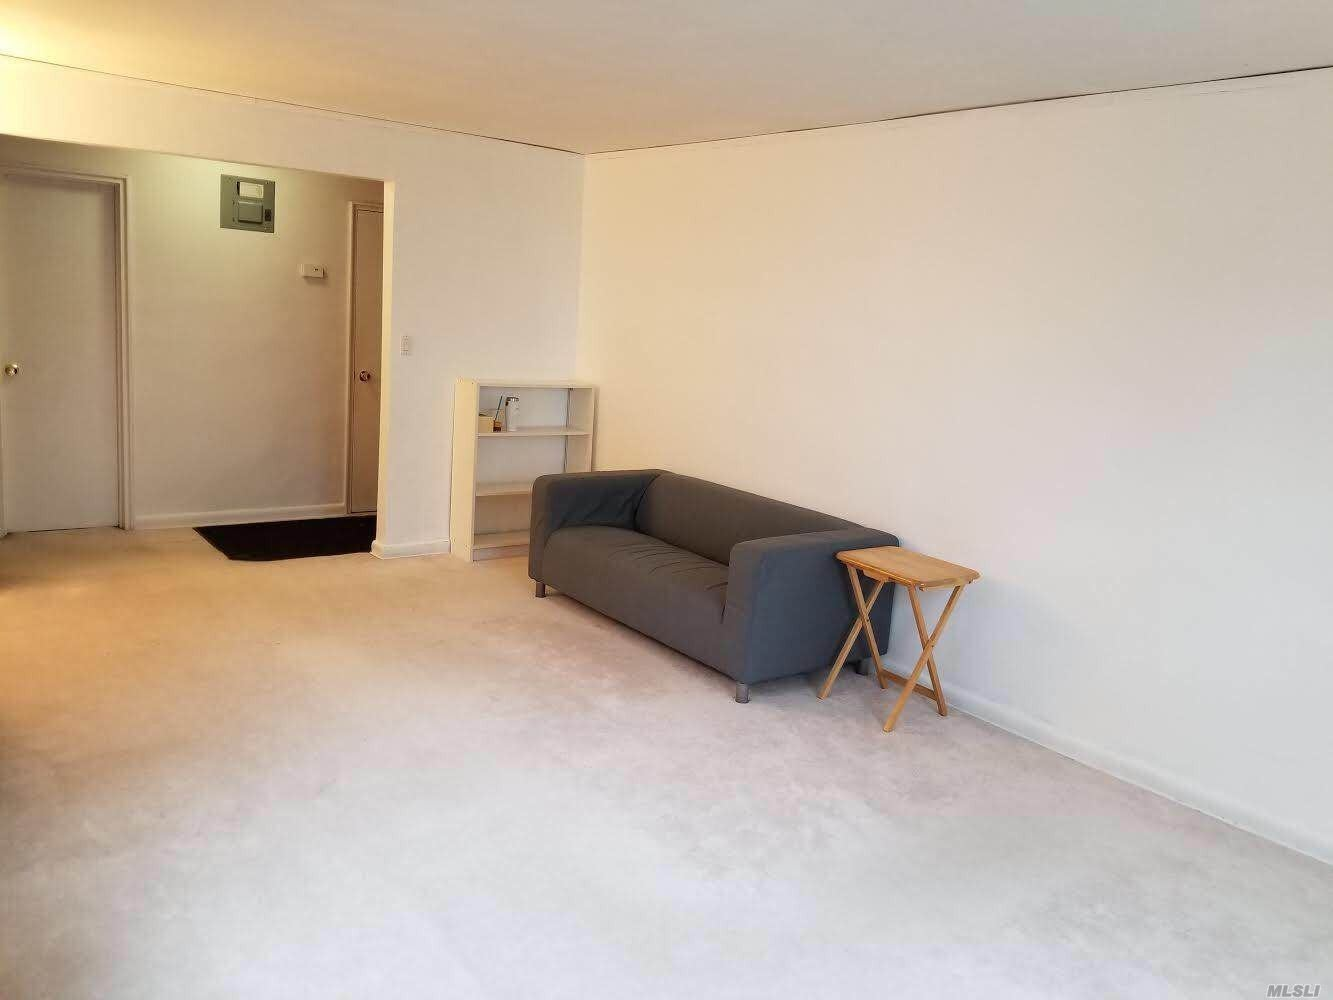 A Huge And Bright Studio With Many Closets And A Walk In Storage Room. A Renovated Bathroom. Close By Bus Stops, Shopping, Restaurants, And A Movie Center. Laundry Facilities In Basement. The Rent Includes A Tv, A Sofa, A Dinning Table. Application Fee $300.